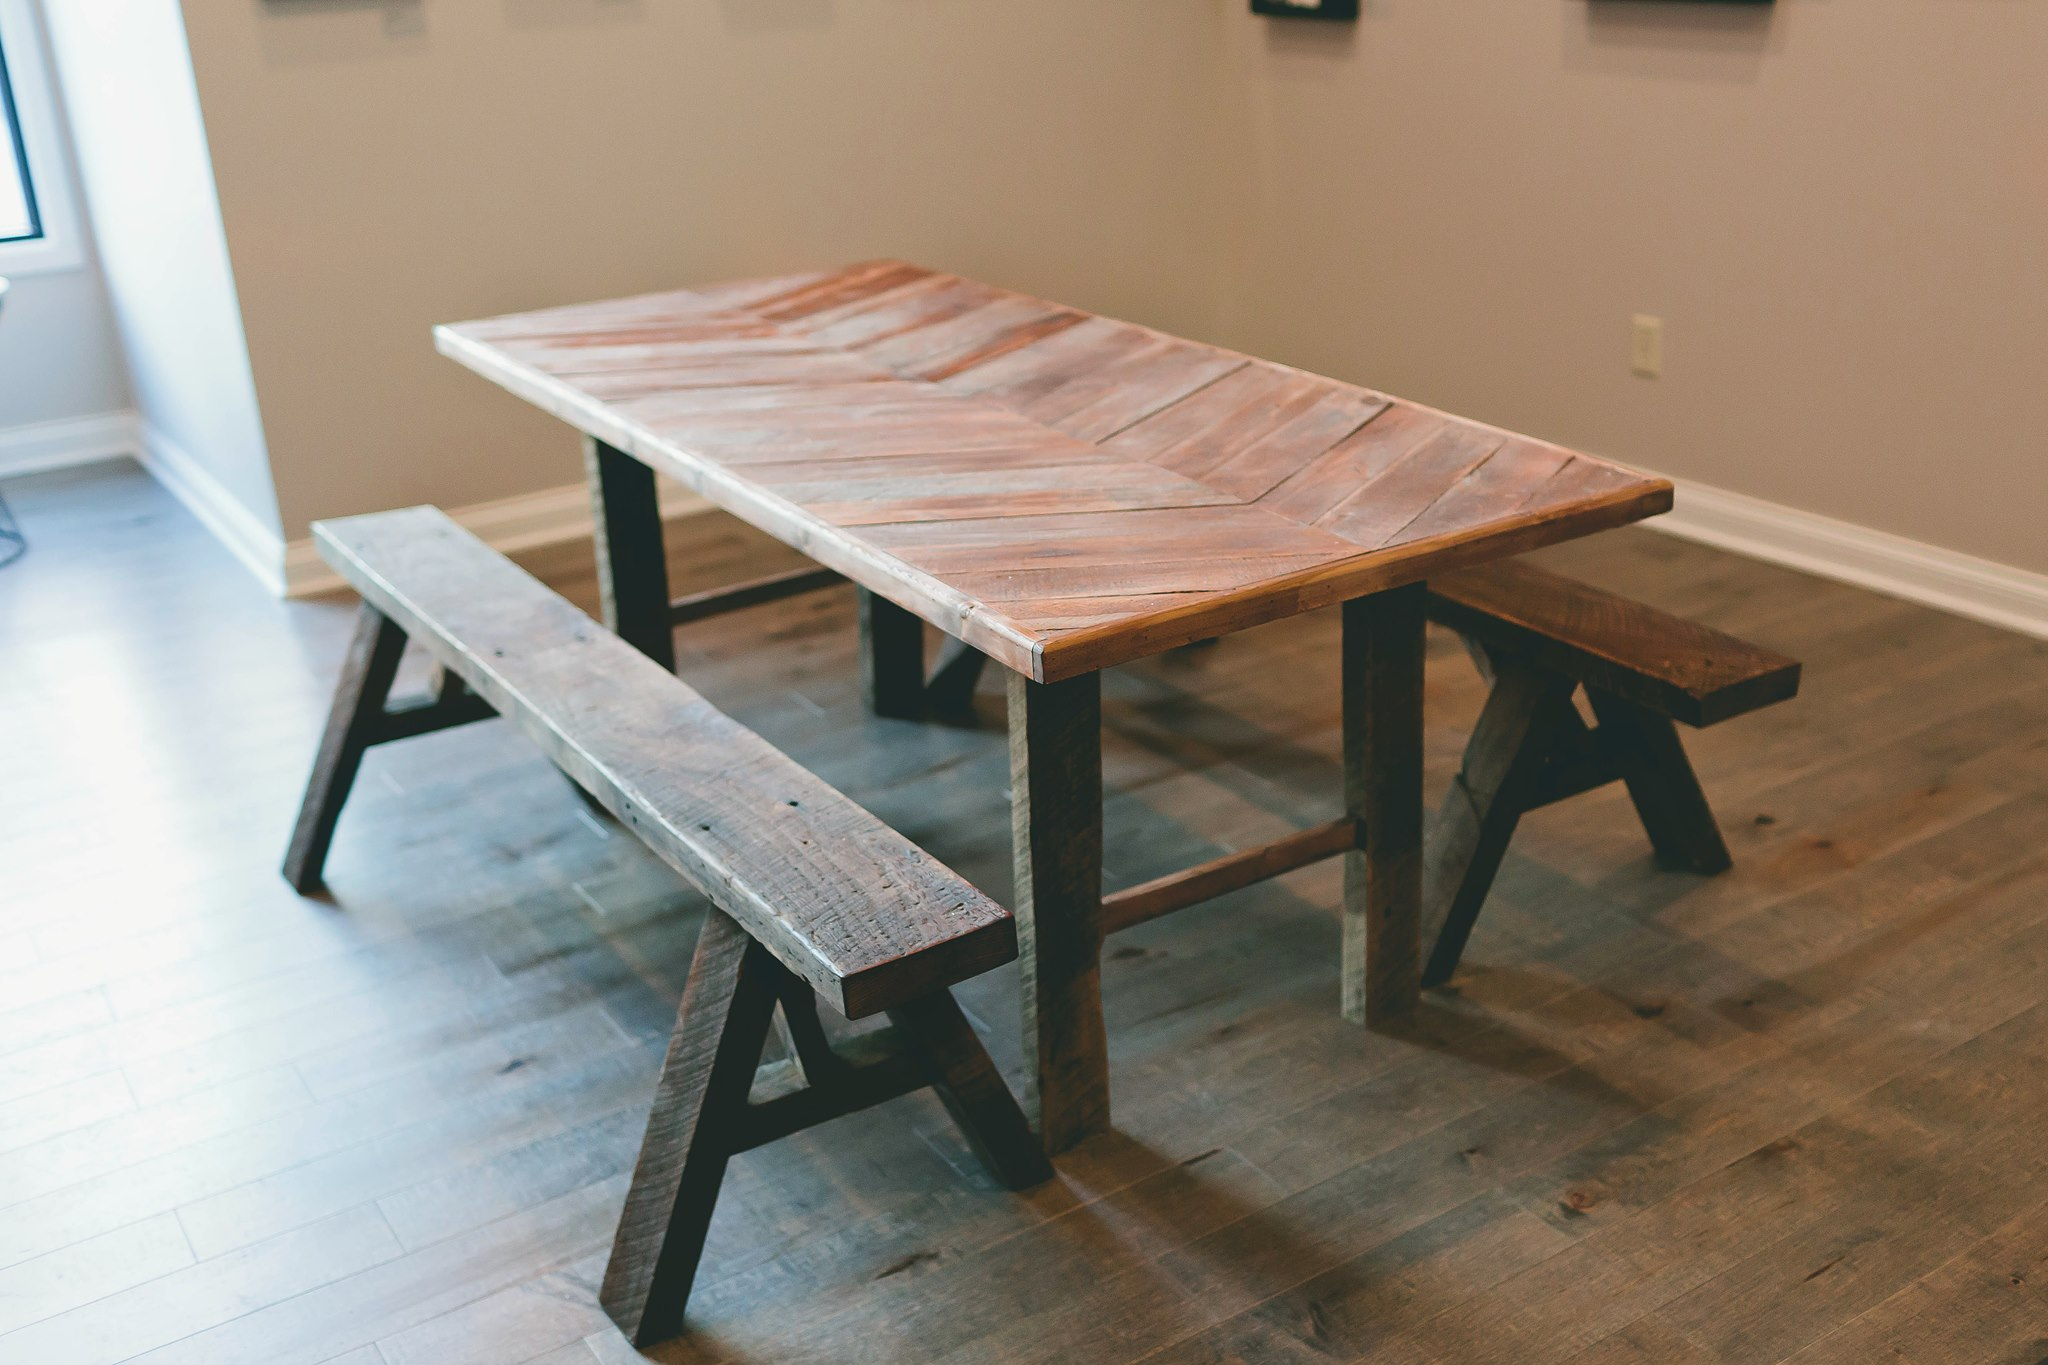 Reclaimed Dining Table $700  Available in chevron, herringbone and straight patterns.  Reclaimed A-frame bench $80 each